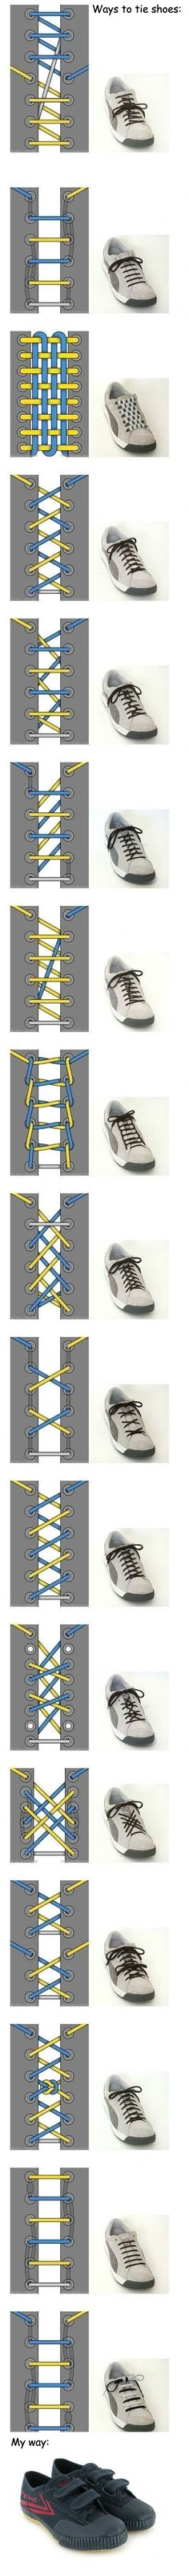 Cool Ways To Tie Your Shoe Laces ~ shoe lace patterns ~ Will have to remember this when the kids finally get shoes with laces. Tie Shoes, Your Shoes, Shoes Pic, Sneakers Shoes, Jeans Shoes, Cuffed Jeans, Flat Shoes, Platform Sneakers, Looks Cool